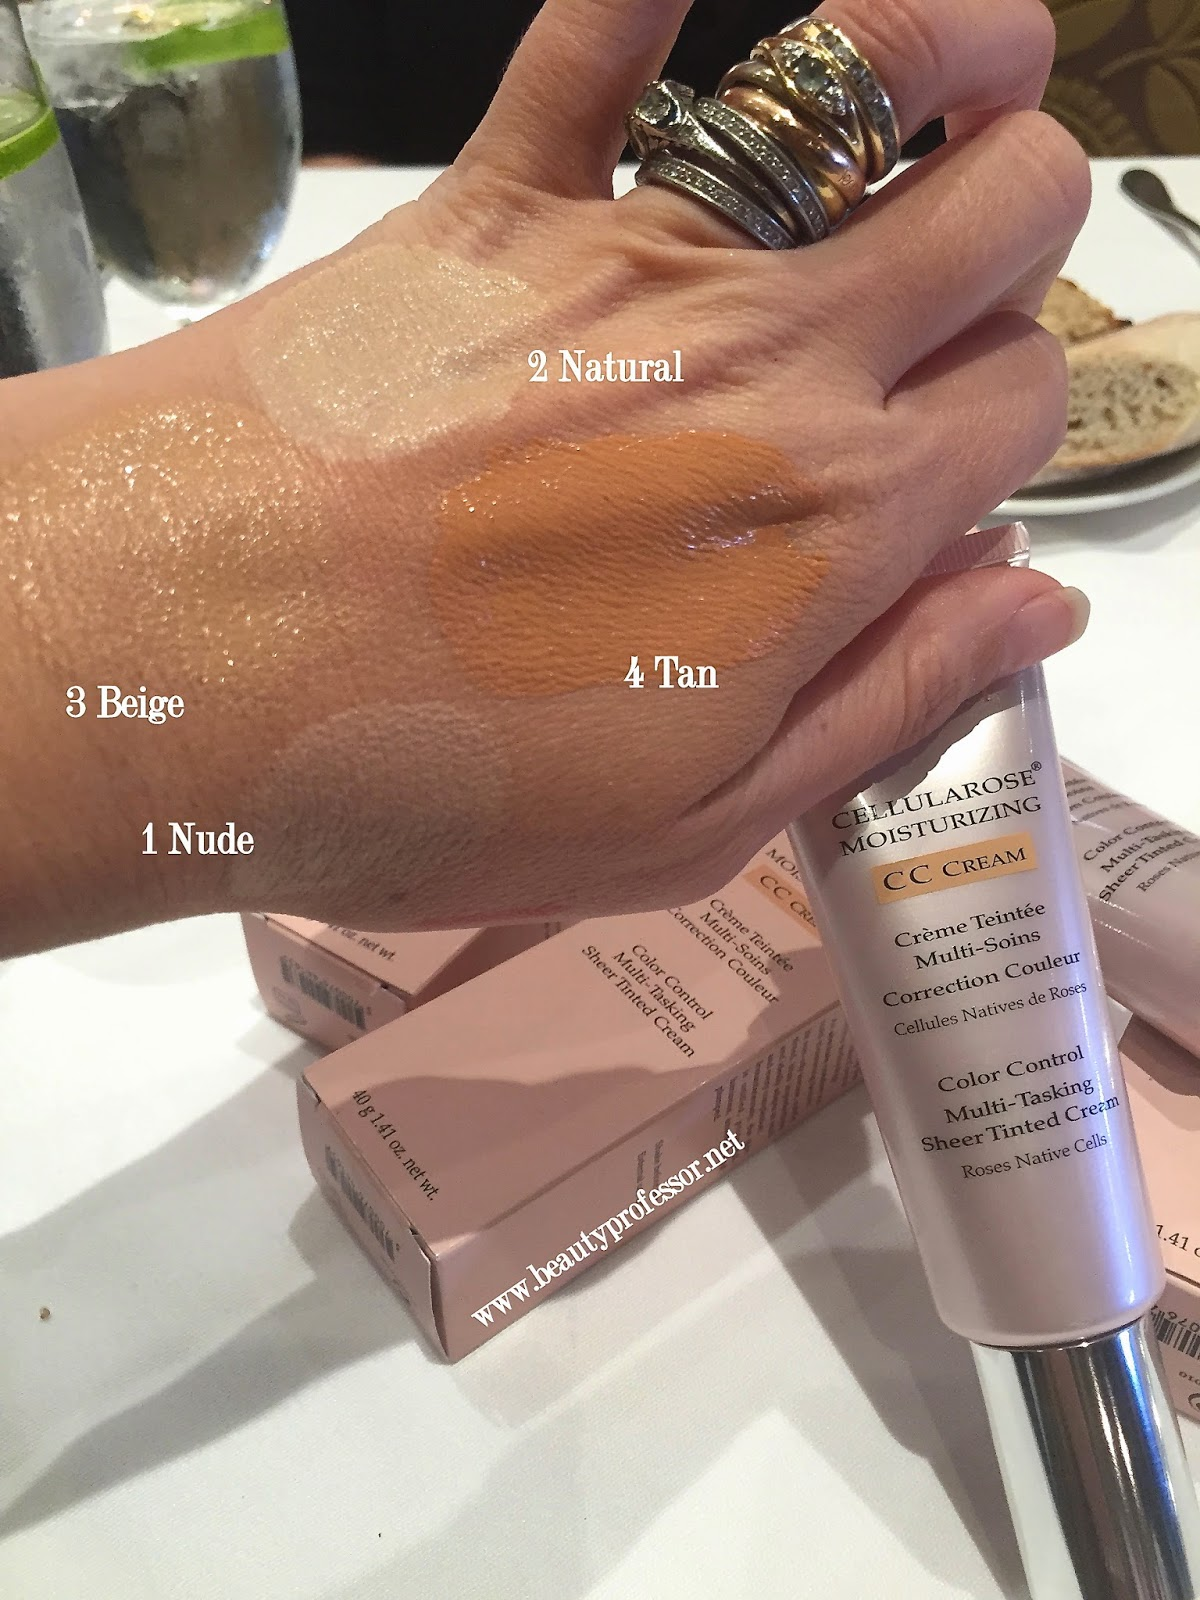 by terry cellularose moisturizing cc cream swatches